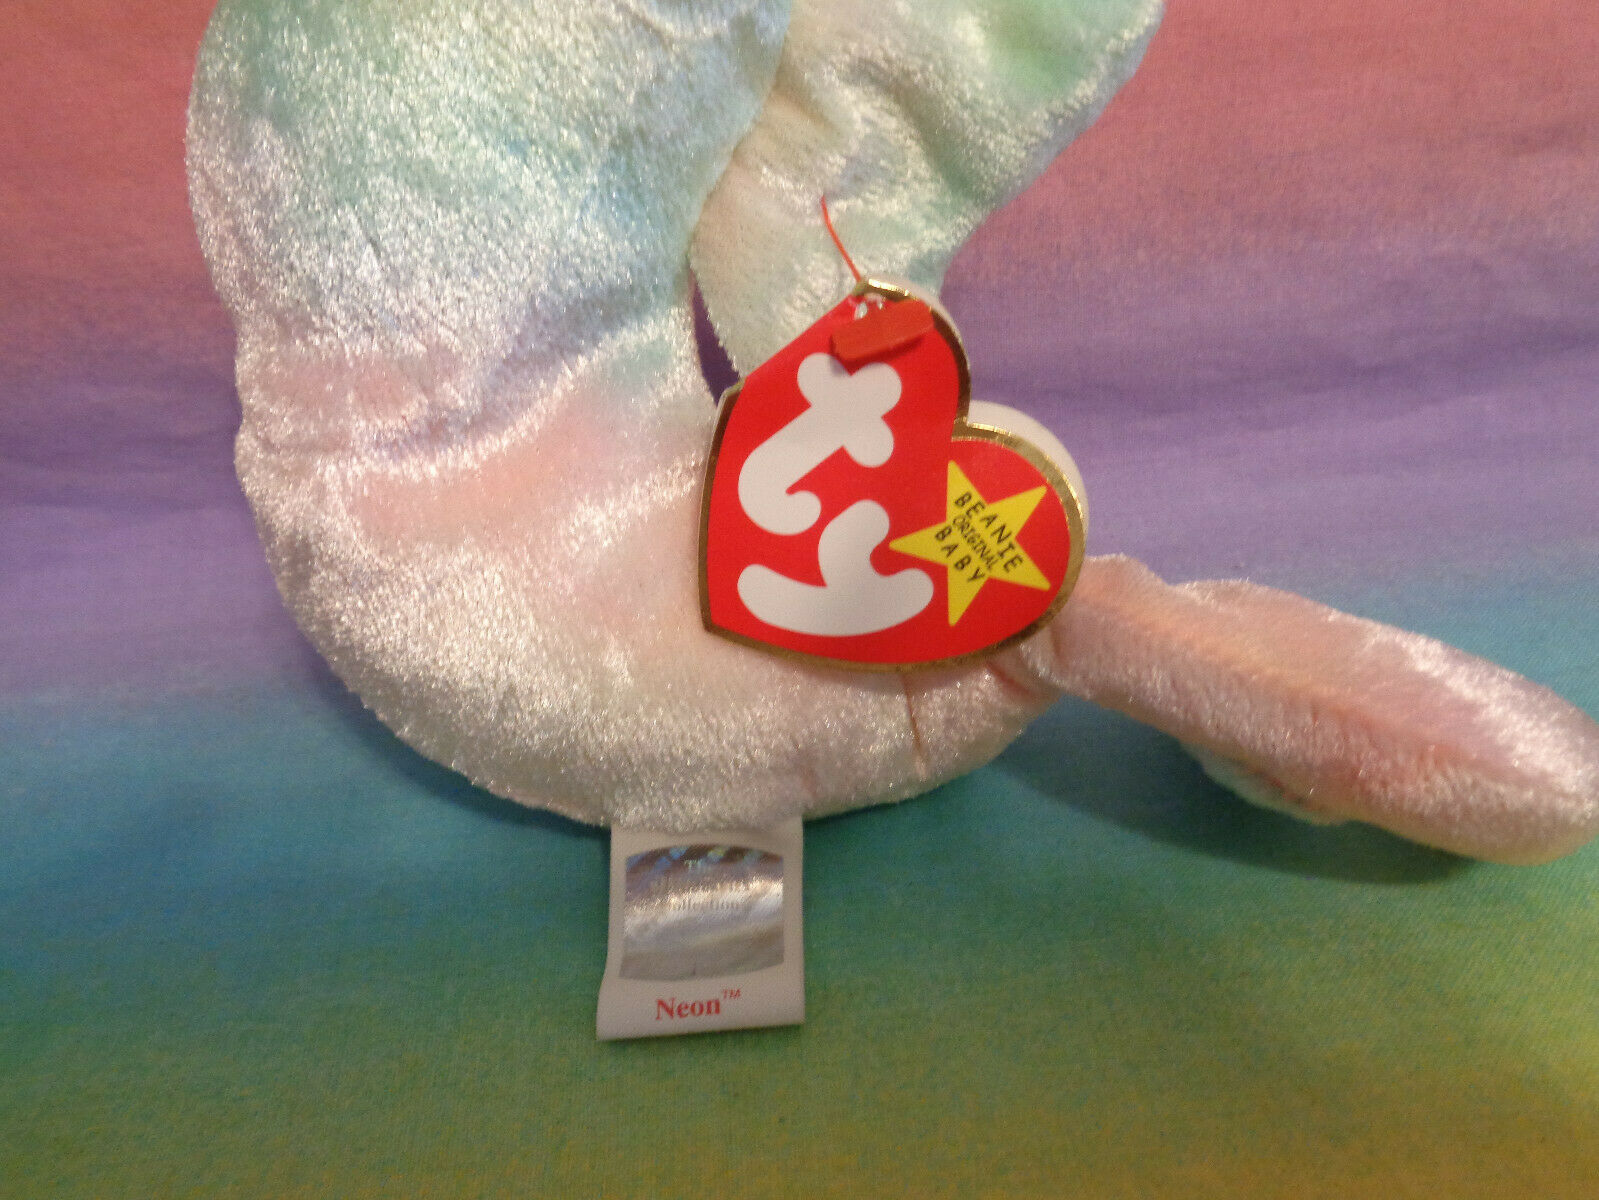 Vintage 1999 Ty Beanie Baby Retired Neon the Seahorse w/ Tags image 3